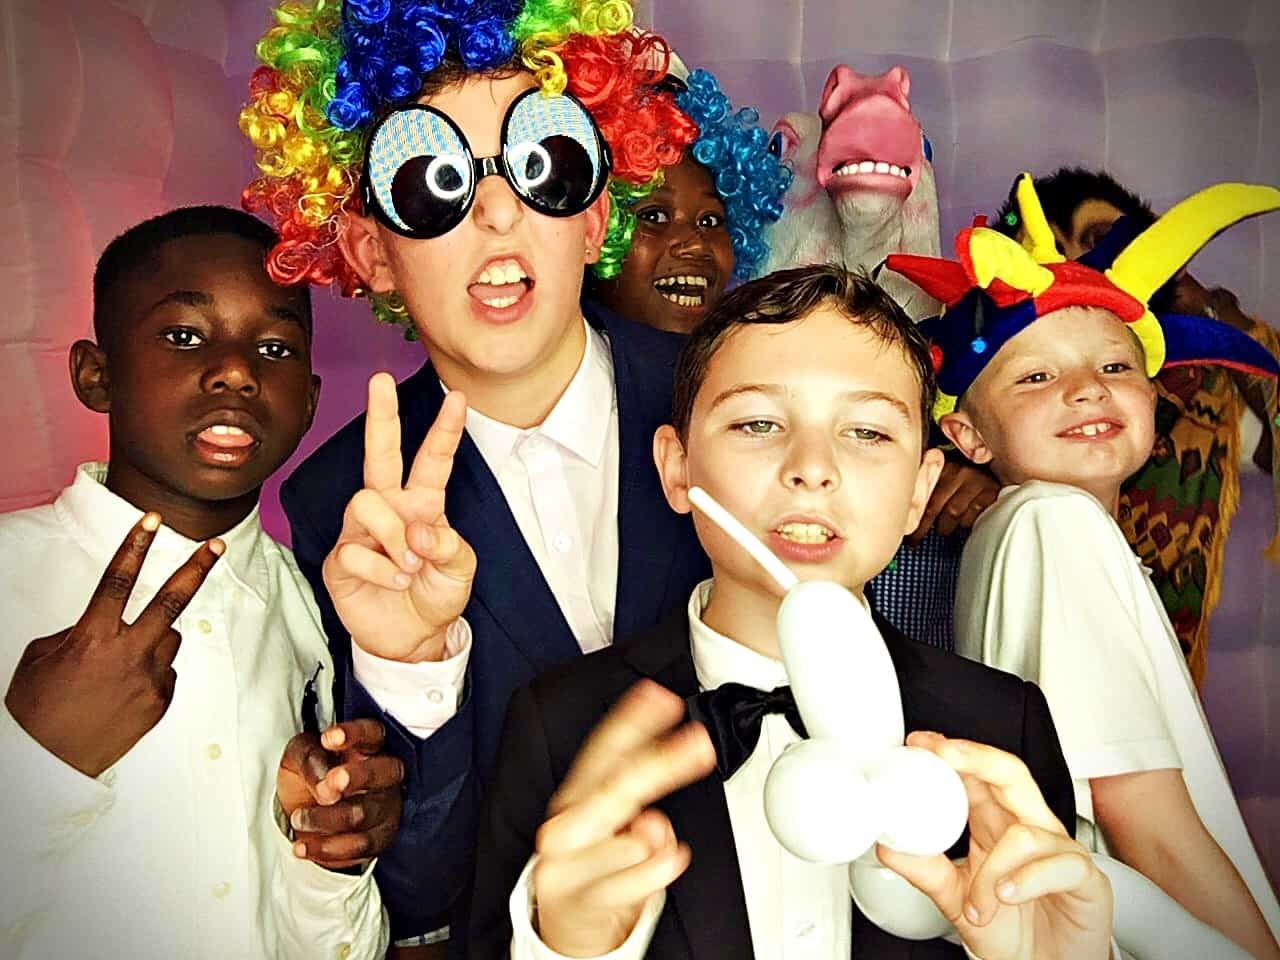 School leavers photo booth hire in Essex - Moji Entertainer